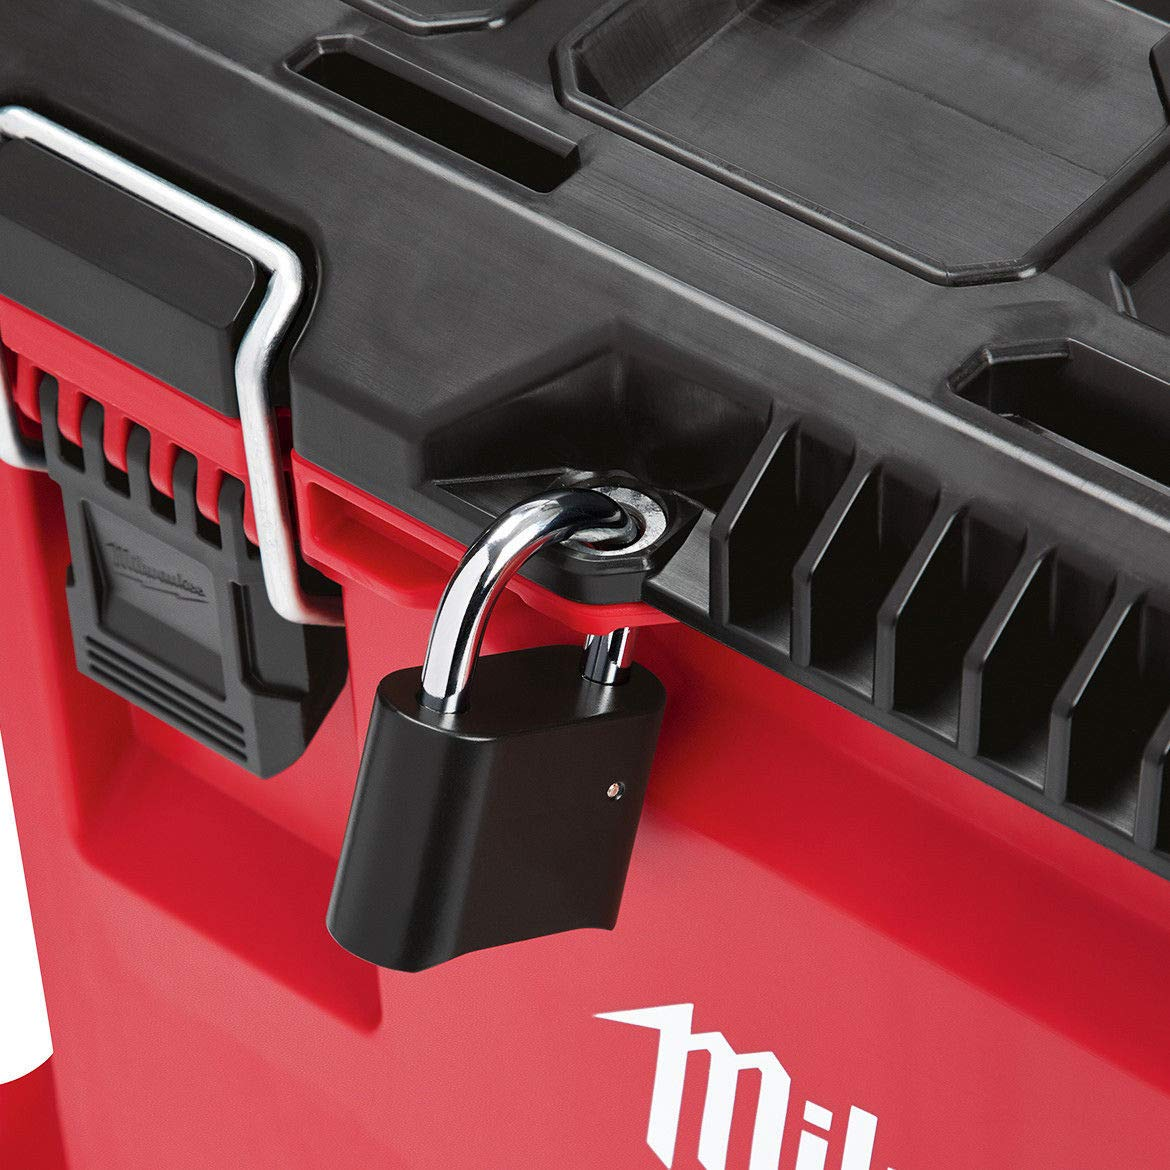 Rolling Tool Box 22 Milwaukee Electric Tools 48-22-8426 Packout